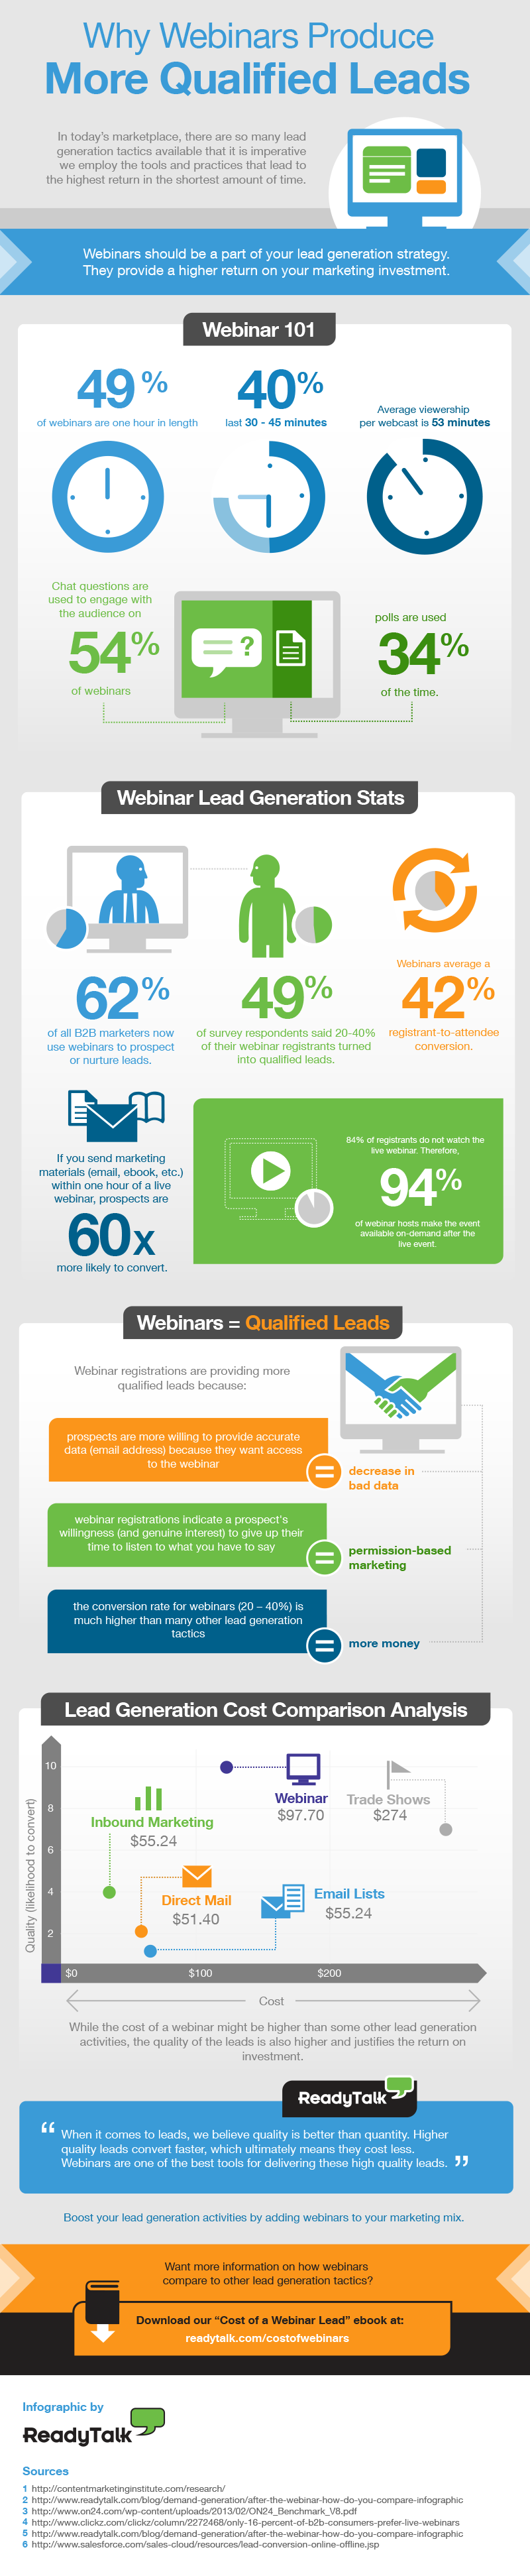 Webinars produce more qualified leads - Infographic